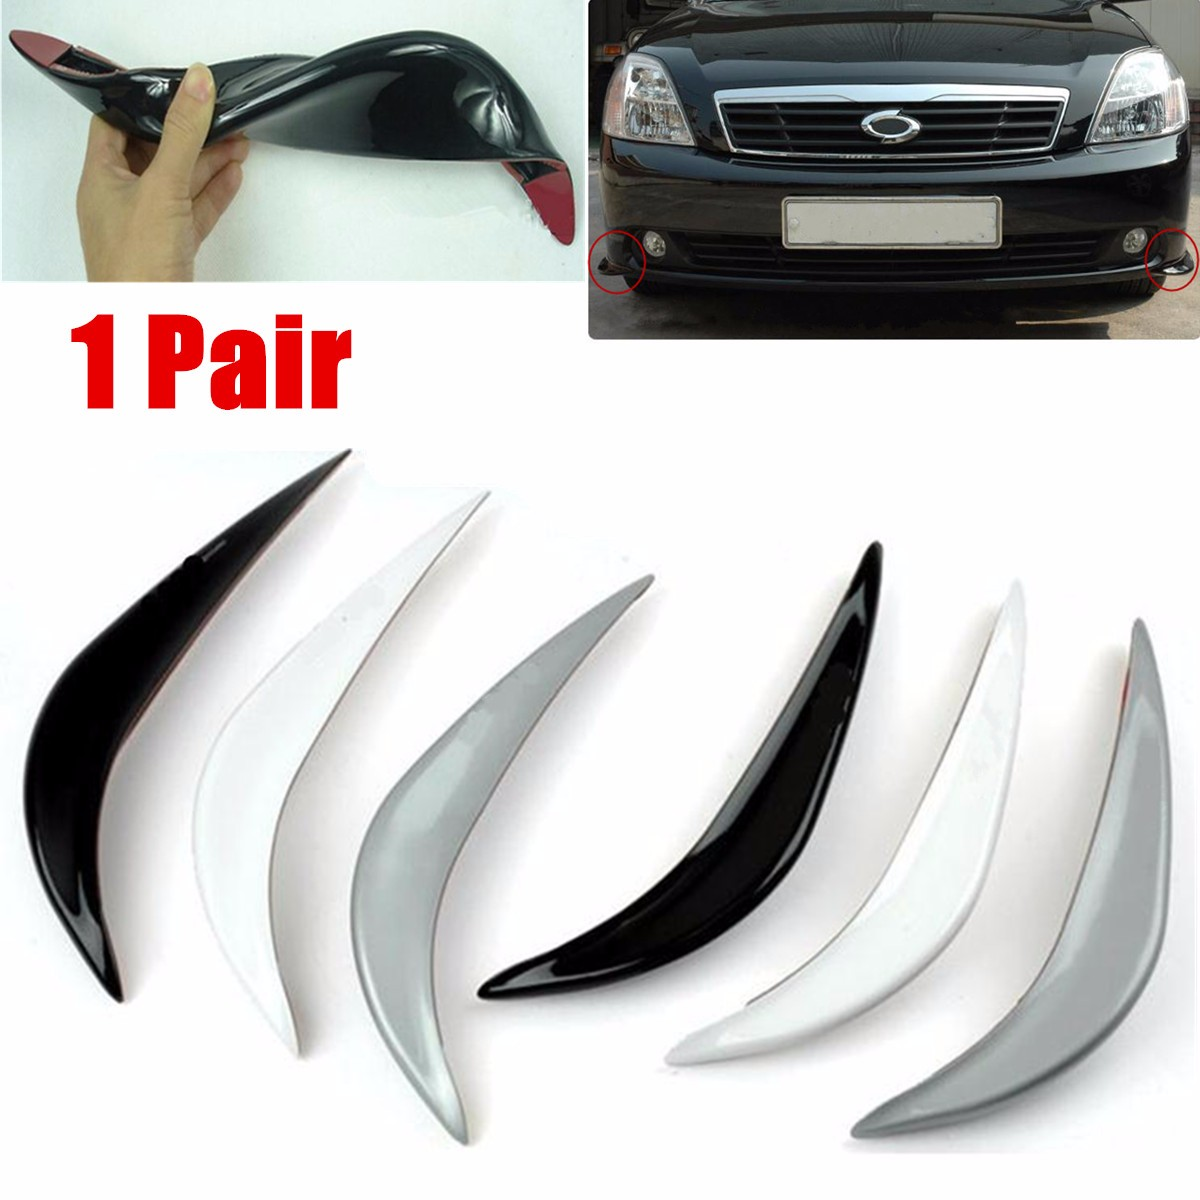 M.way 1 Pair Universal Car Anti-Collision Patch Rear Bumper Corner Guard Protector Rubber Front Lower Lip Guard Strip